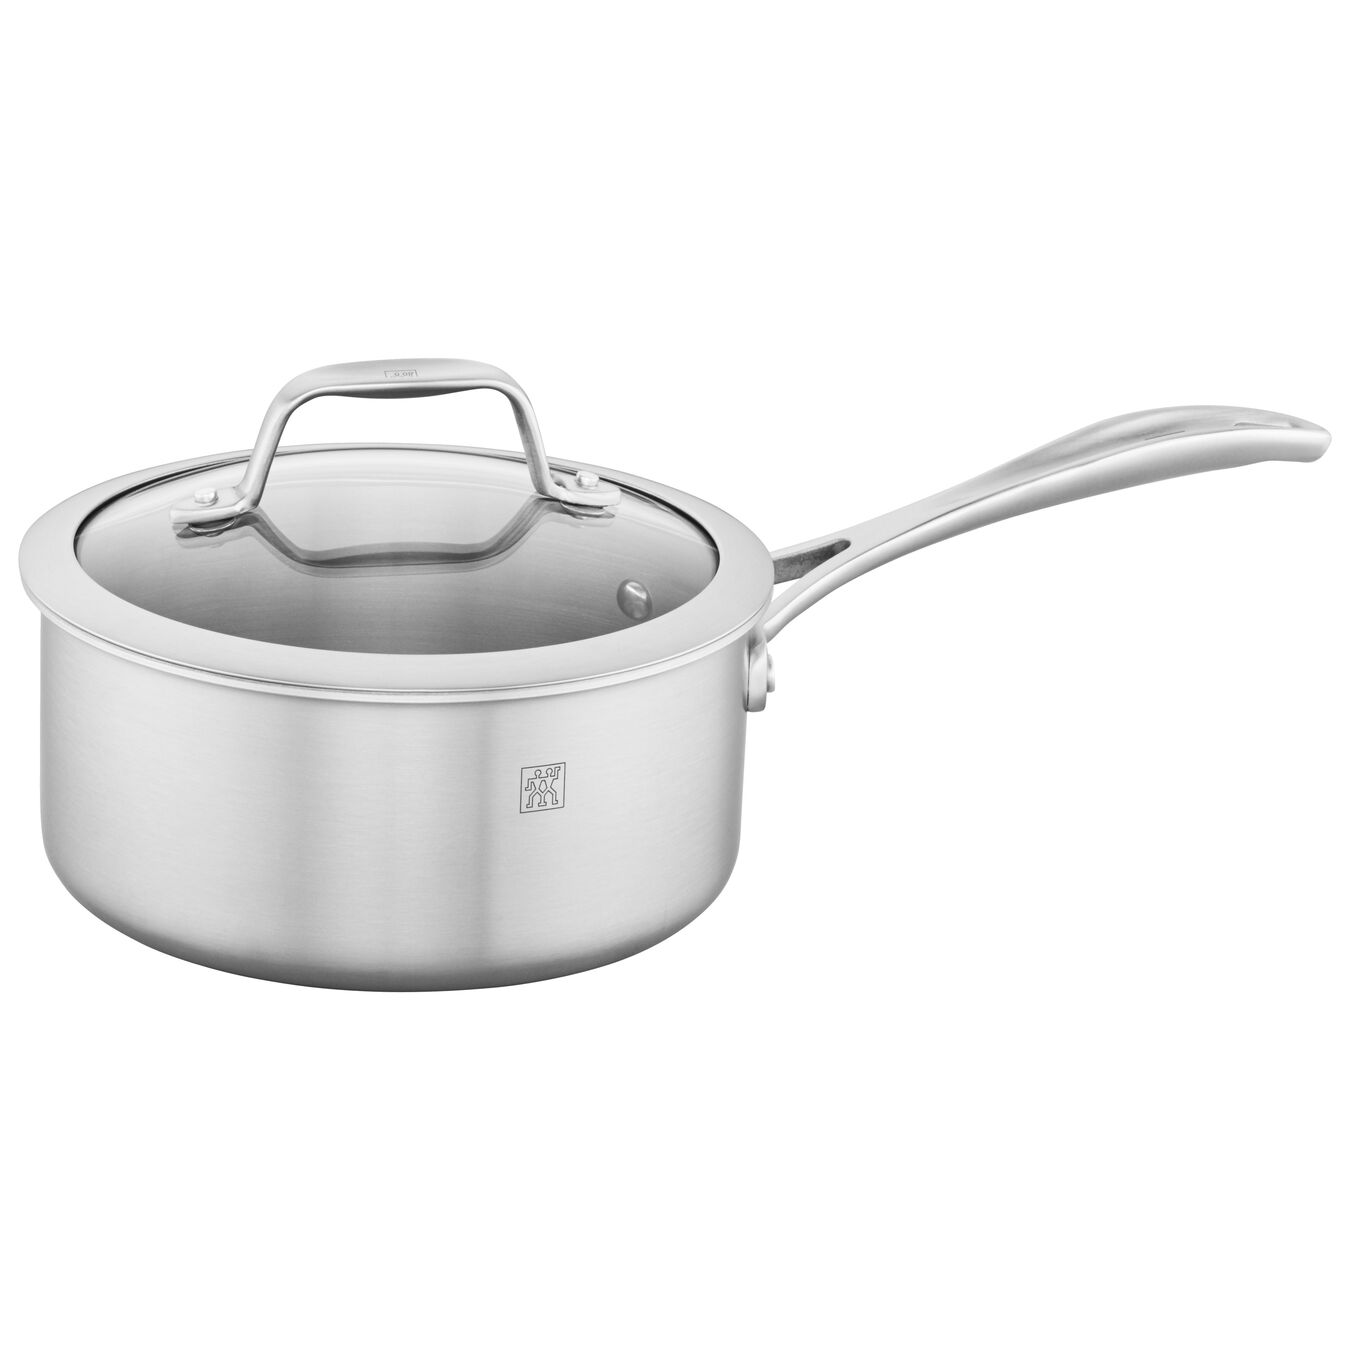 1.75 qt, stainless steel, Sauce pan,,large 2